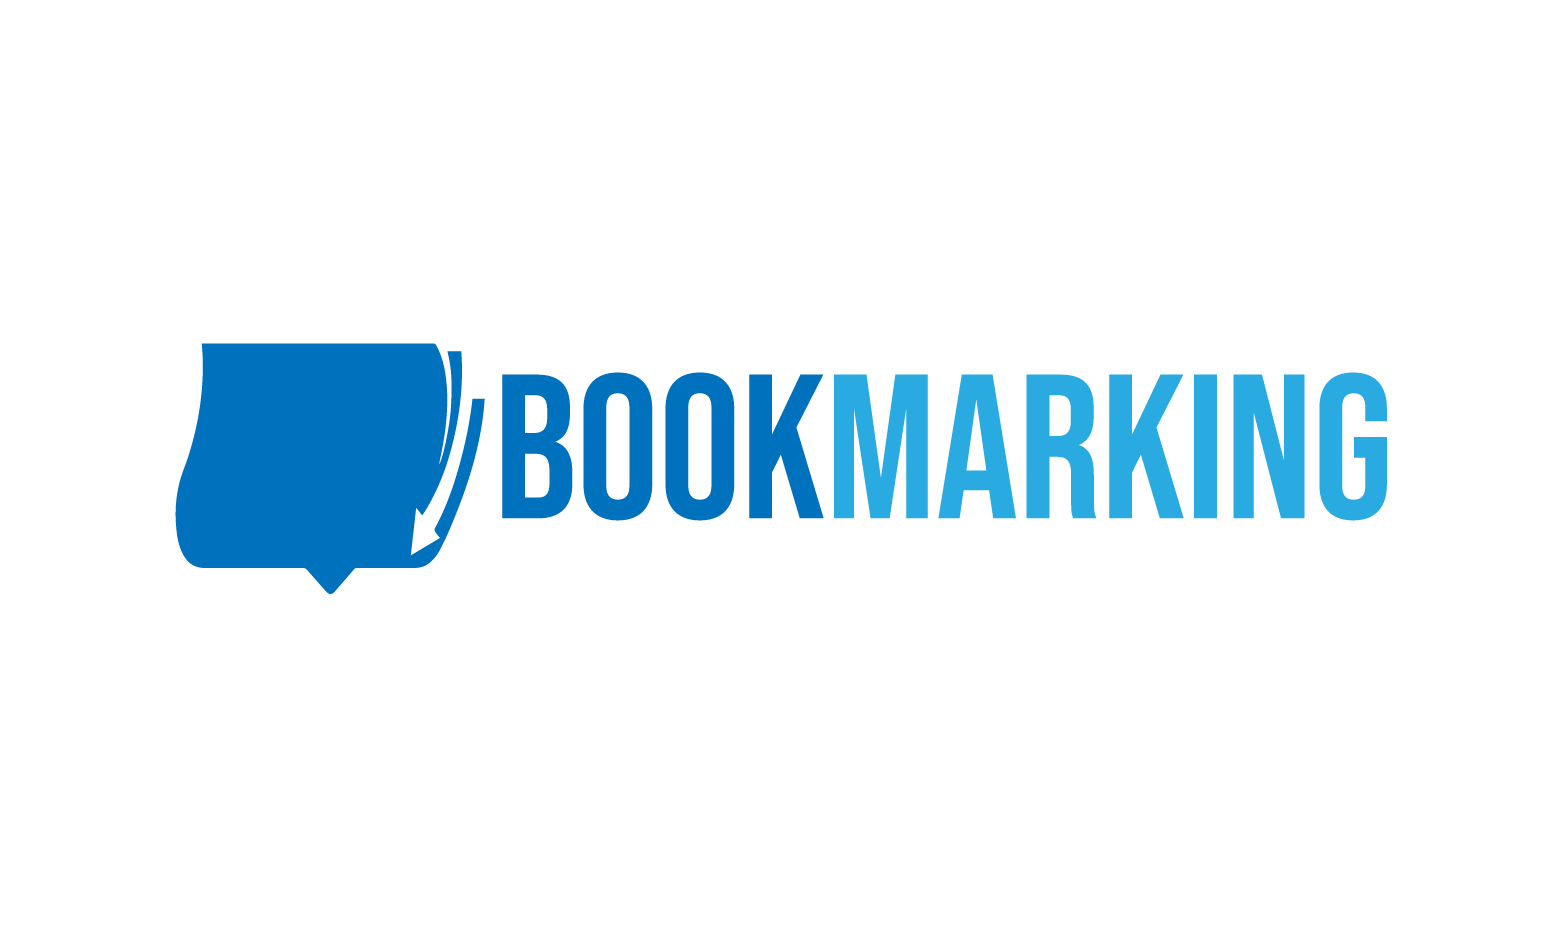 Bookmarking.com